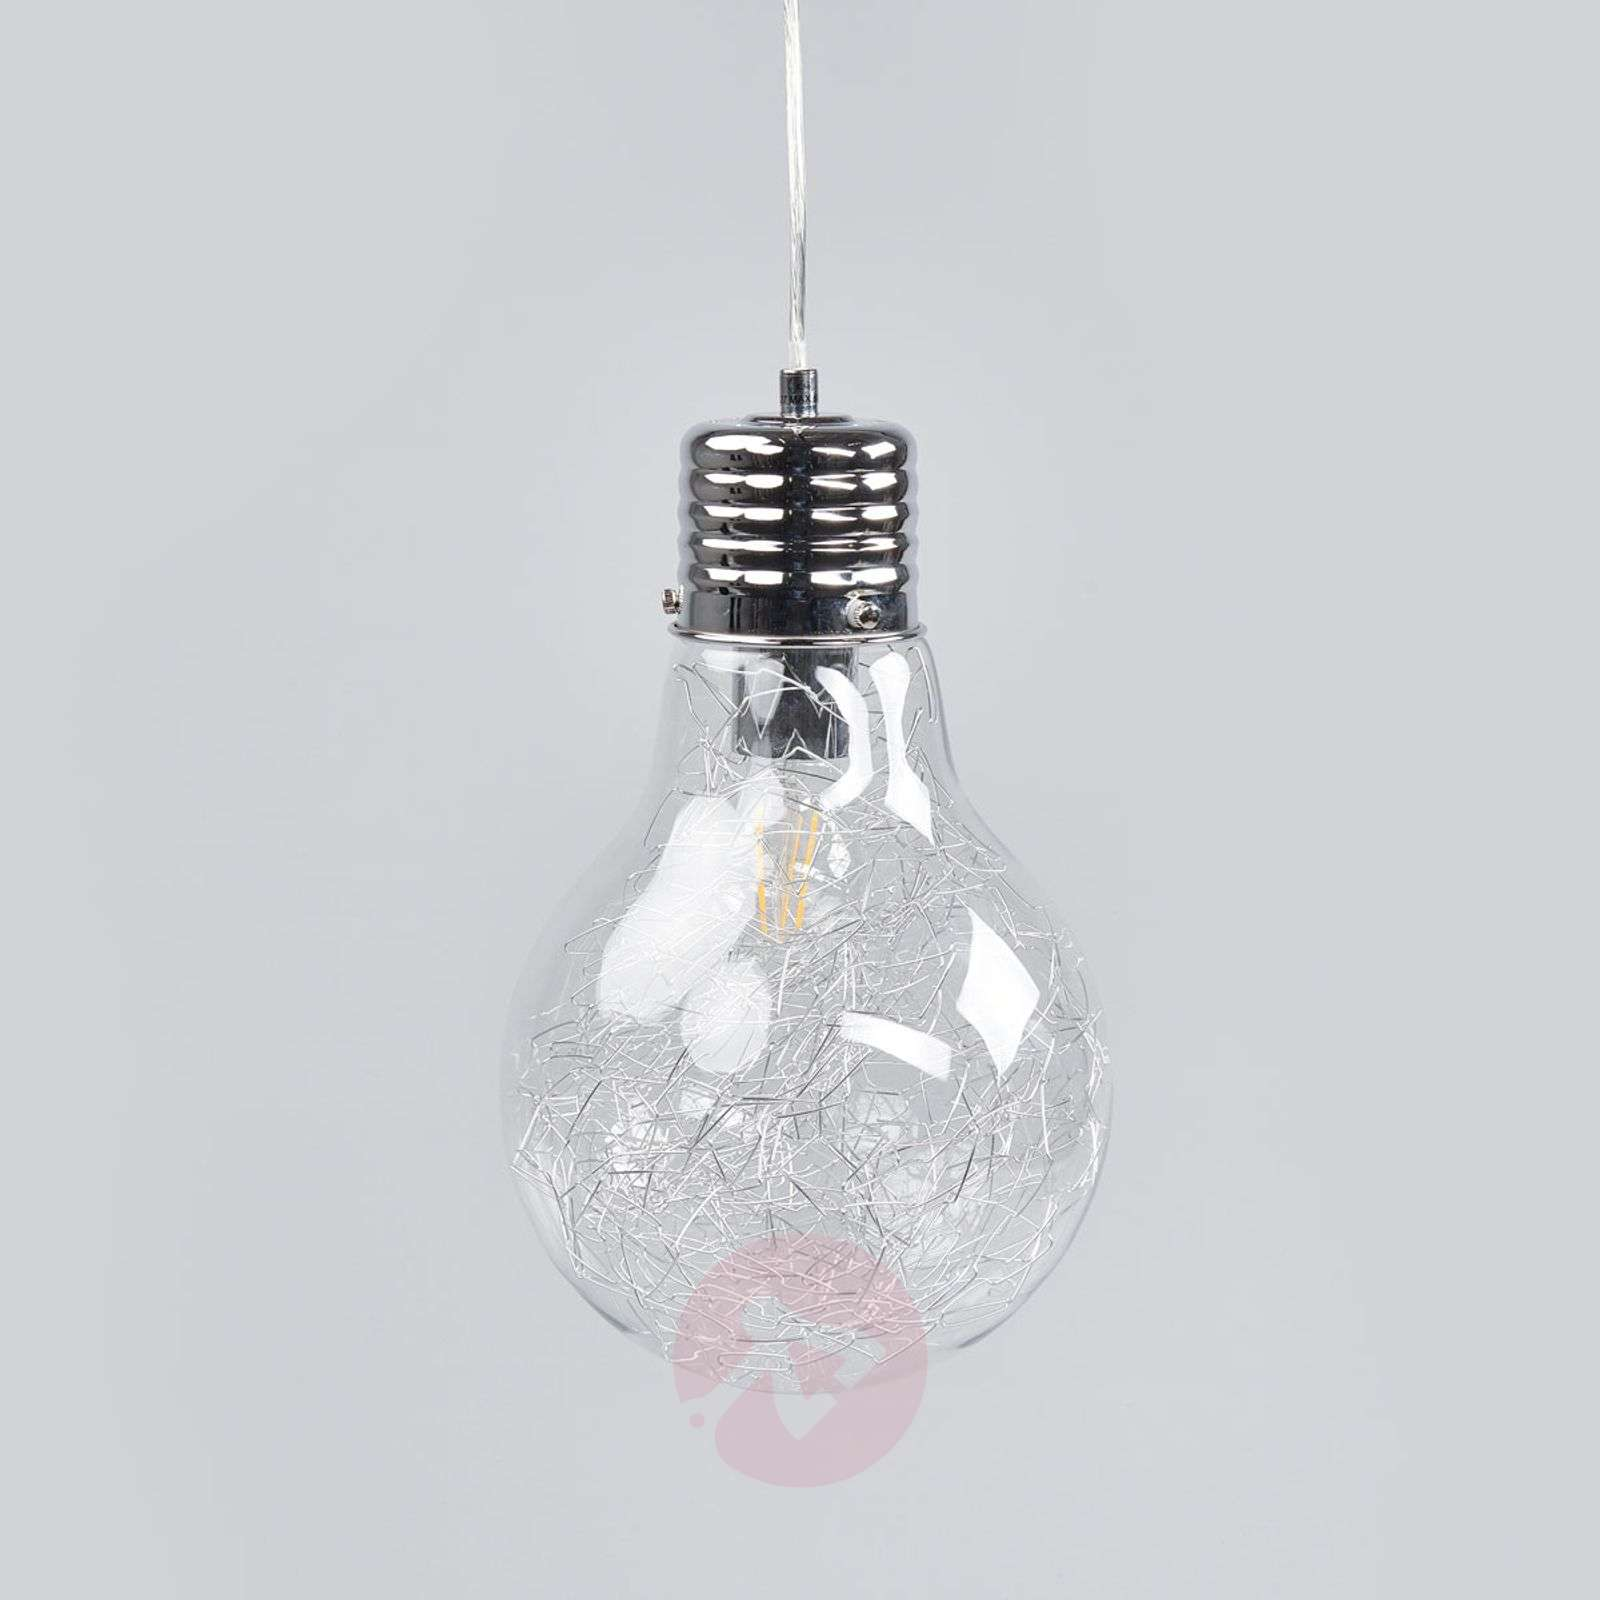 co lamp pendant bulbs imagination top wonderful lamps antique led edison bulb light